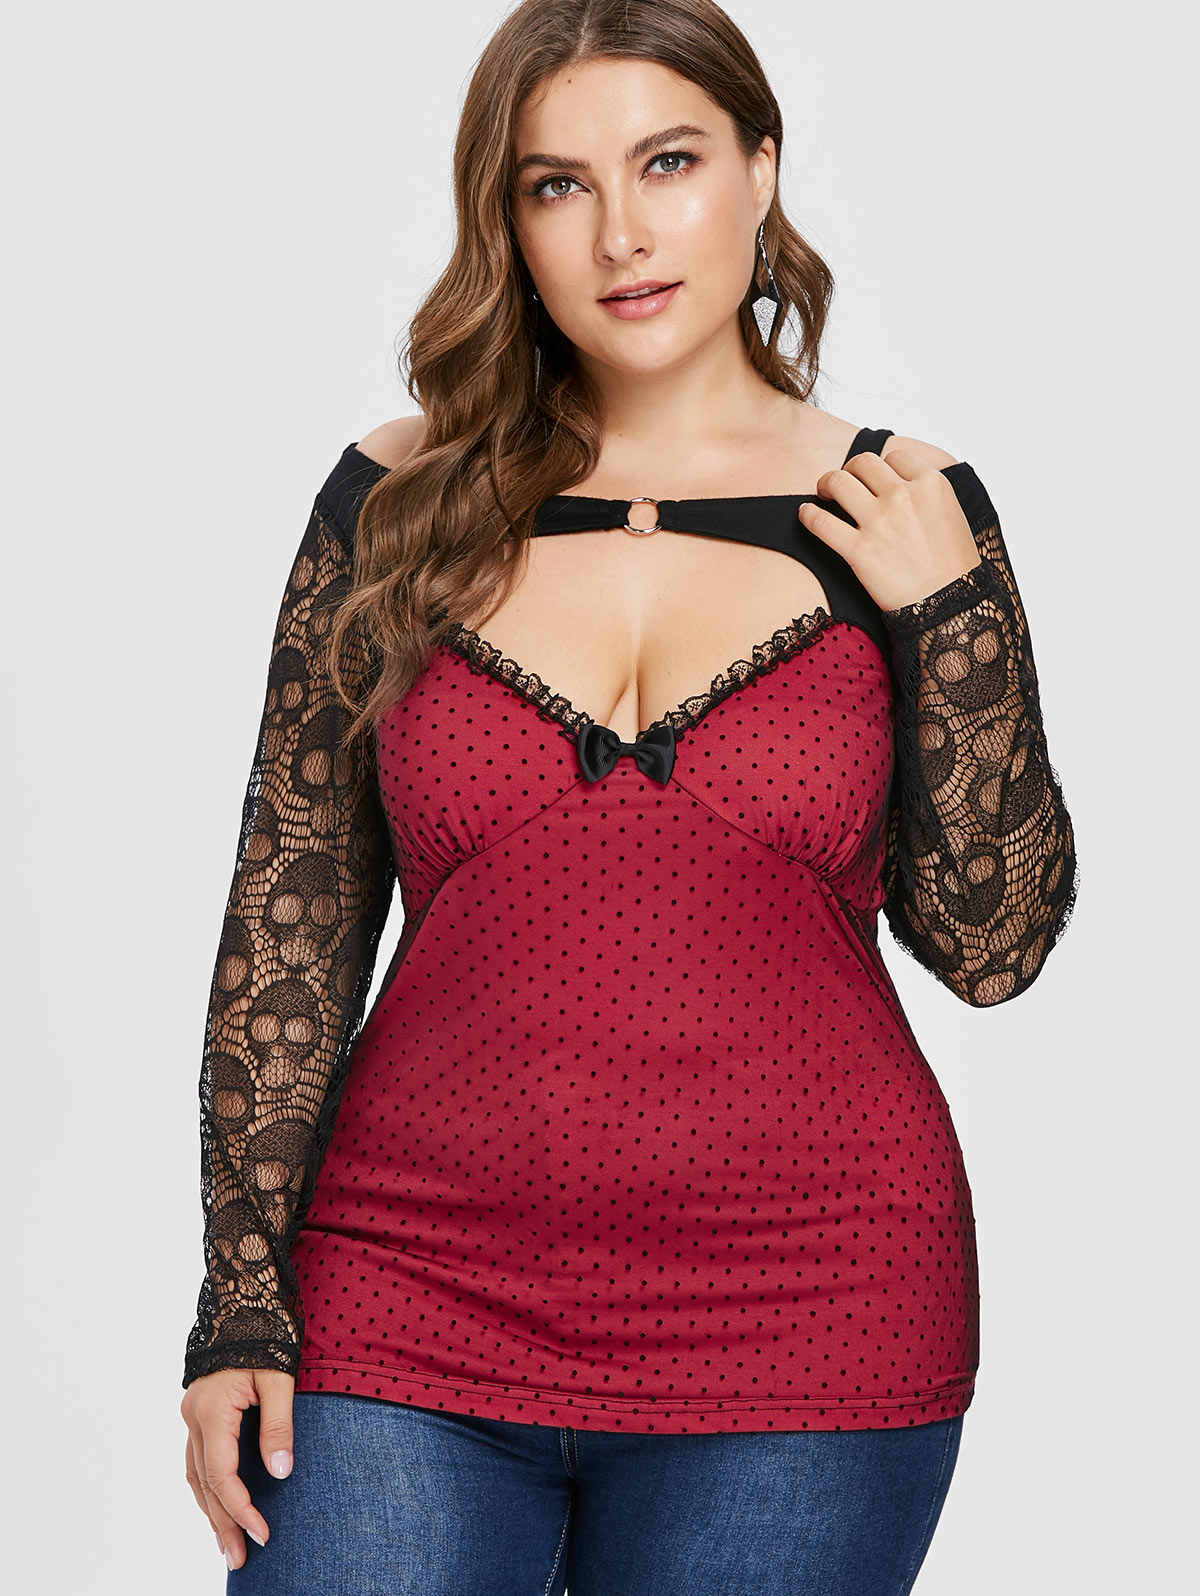 7ce2360982a Wipalo Plus Size 5XL Halloween Skulls Lace Sheer Sleeve Mesh Casual T-Shirt  Sexy Plunging